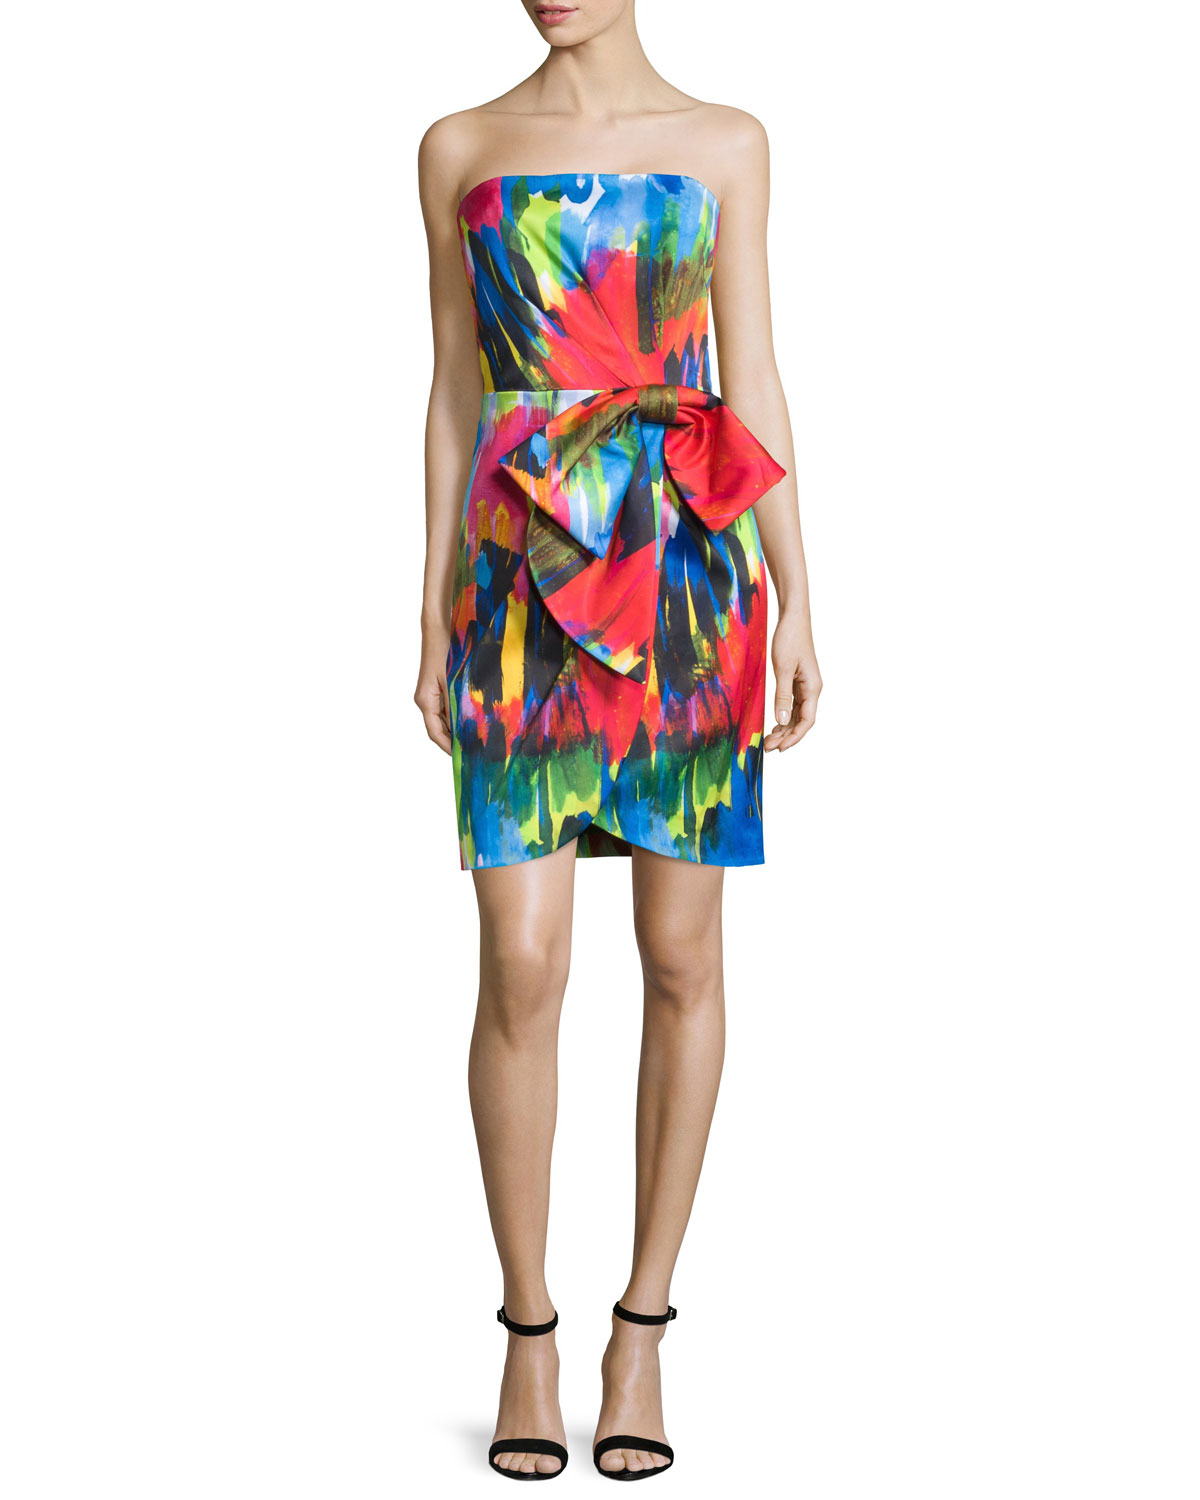 Strapless Printed Cocktail Dress W/Bow, Cobalt, Size: 10 - Milly